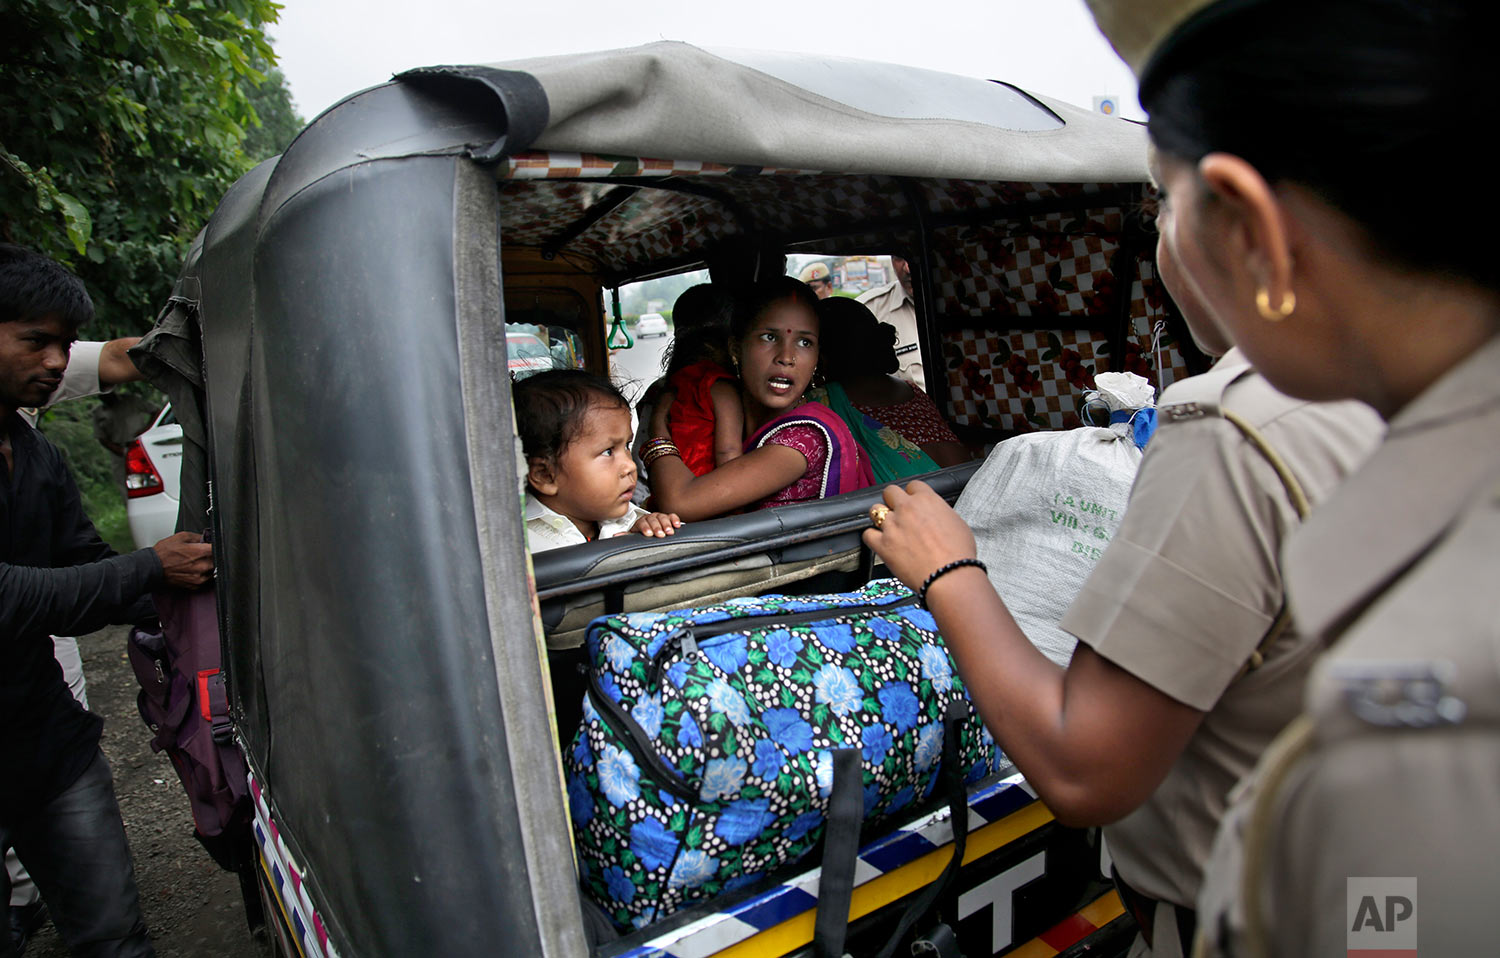 Indian policewomen question a woman passenger in an auto rickshaw as they check for supporters of the Dera Sacha Sauda sect near Panchkula, India, Thursday, Aug. 24, 2017. (AP Photo/Altaf Qadri)